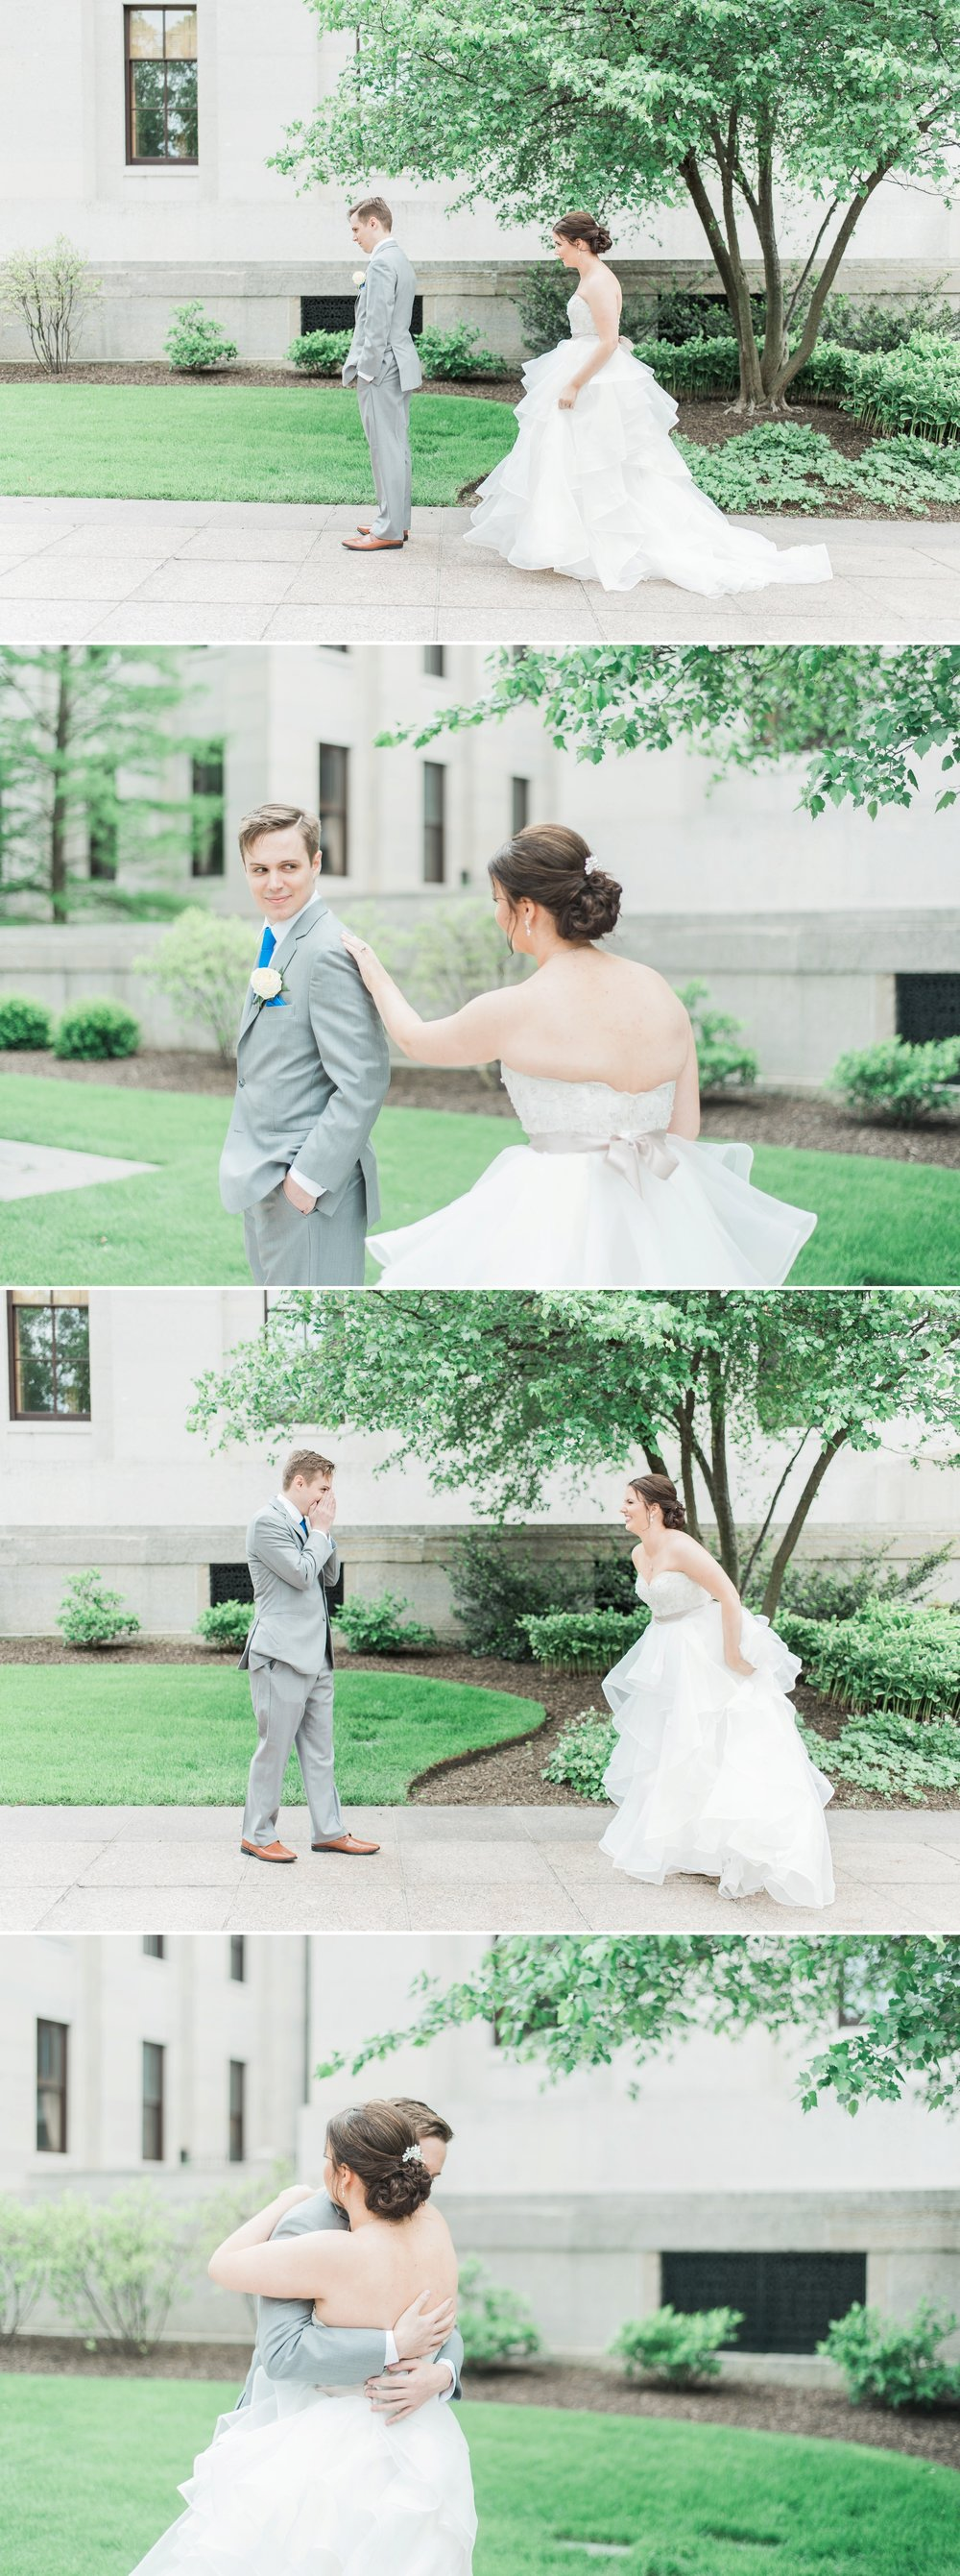 the-vault-columbus-ohio-wedding-emily-chris_0038.jpg